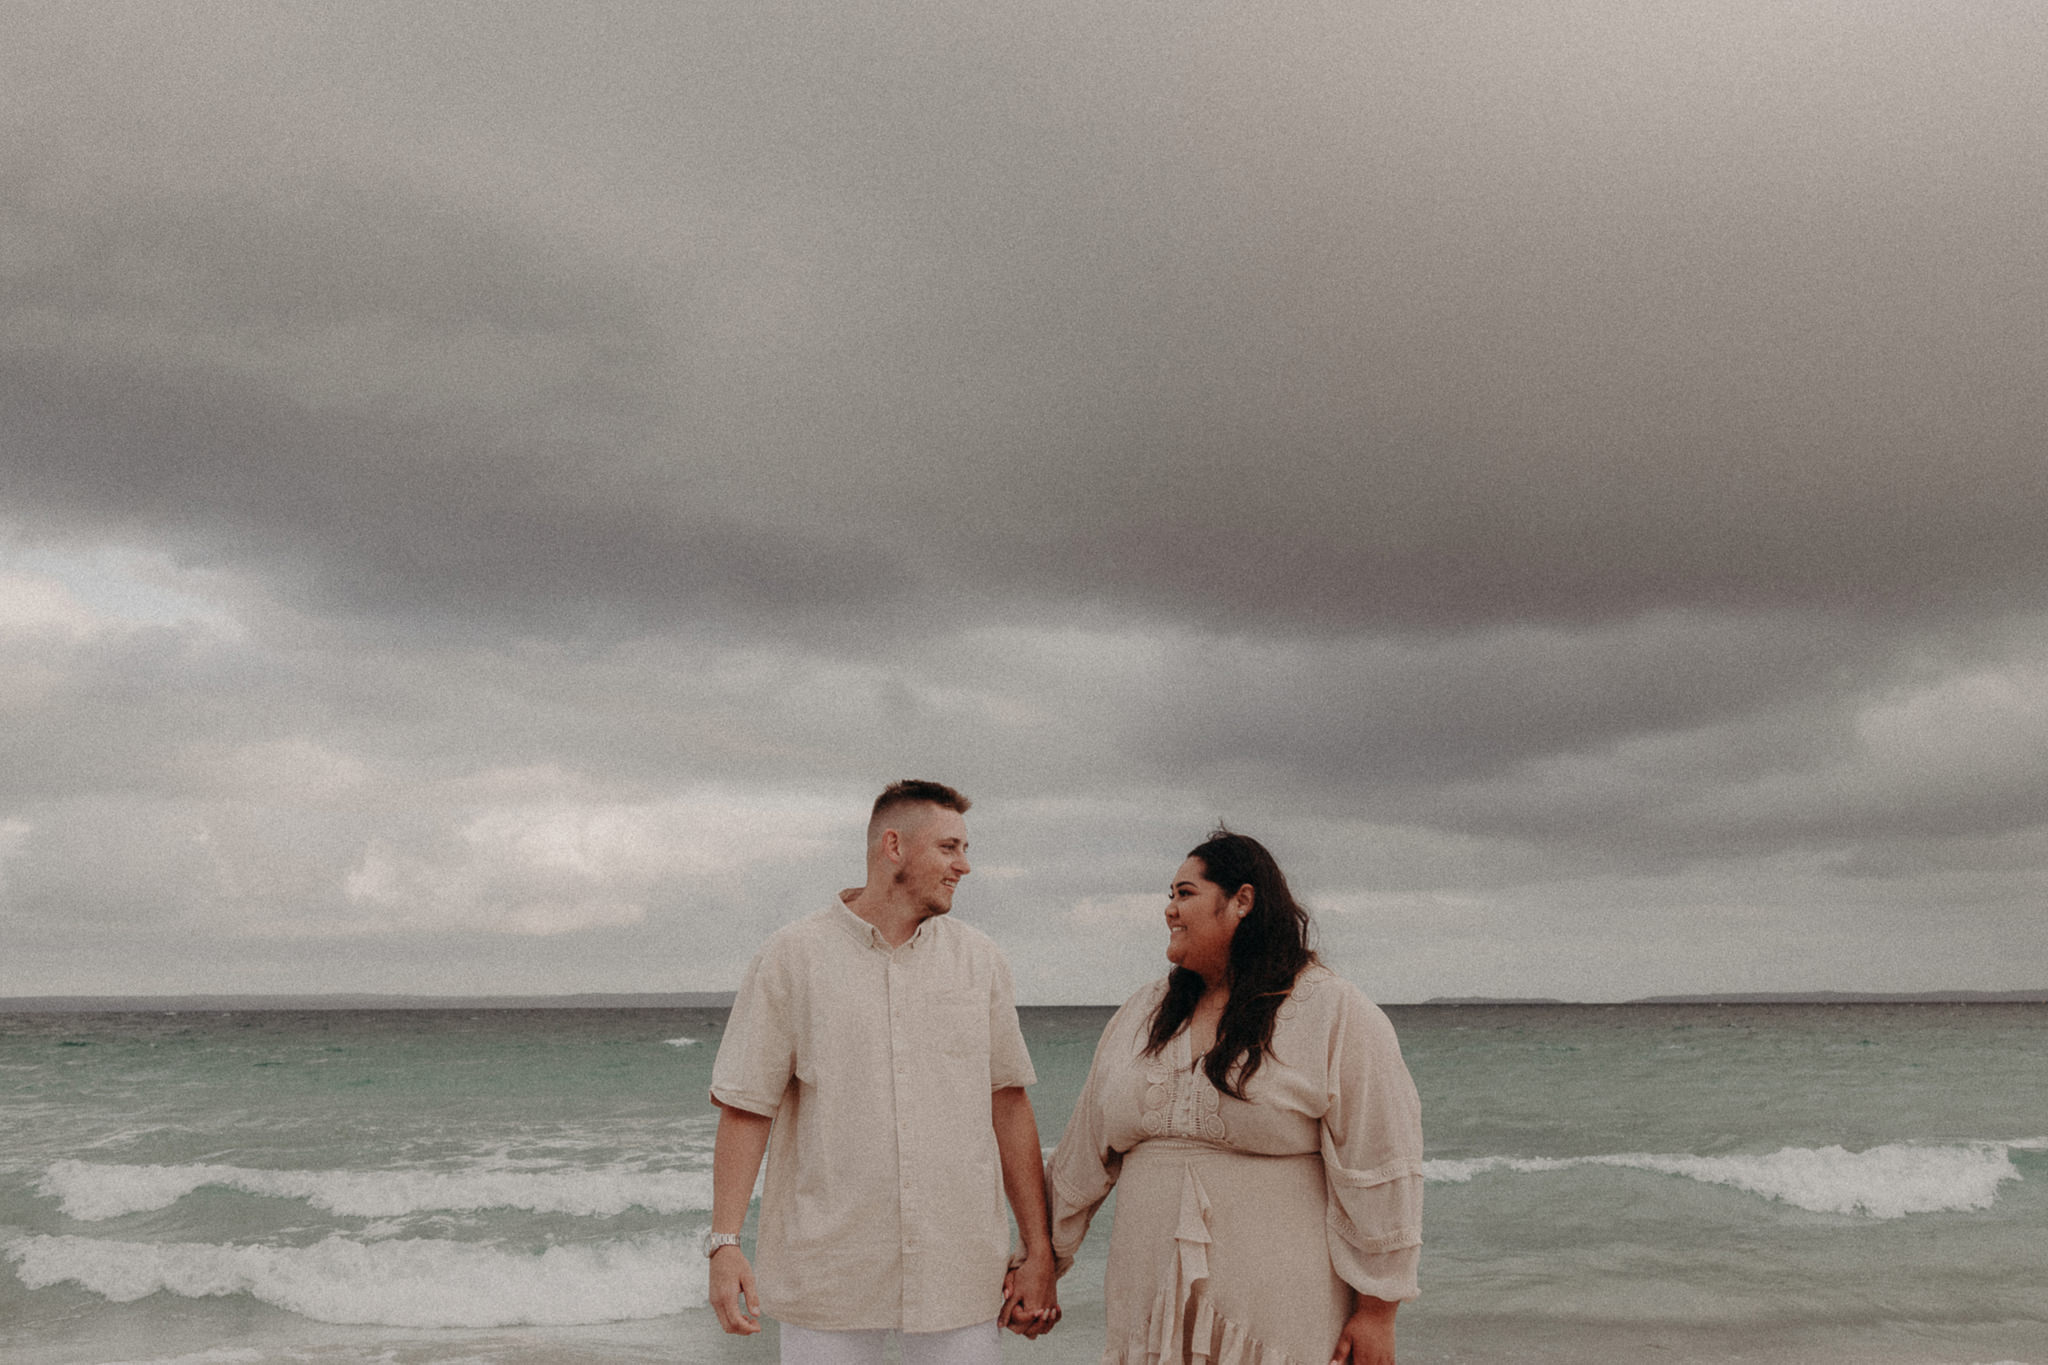 Windswept & Stormy Beachside Engagement Session + With A Surprise Proposal! - Polka Dot Wedding